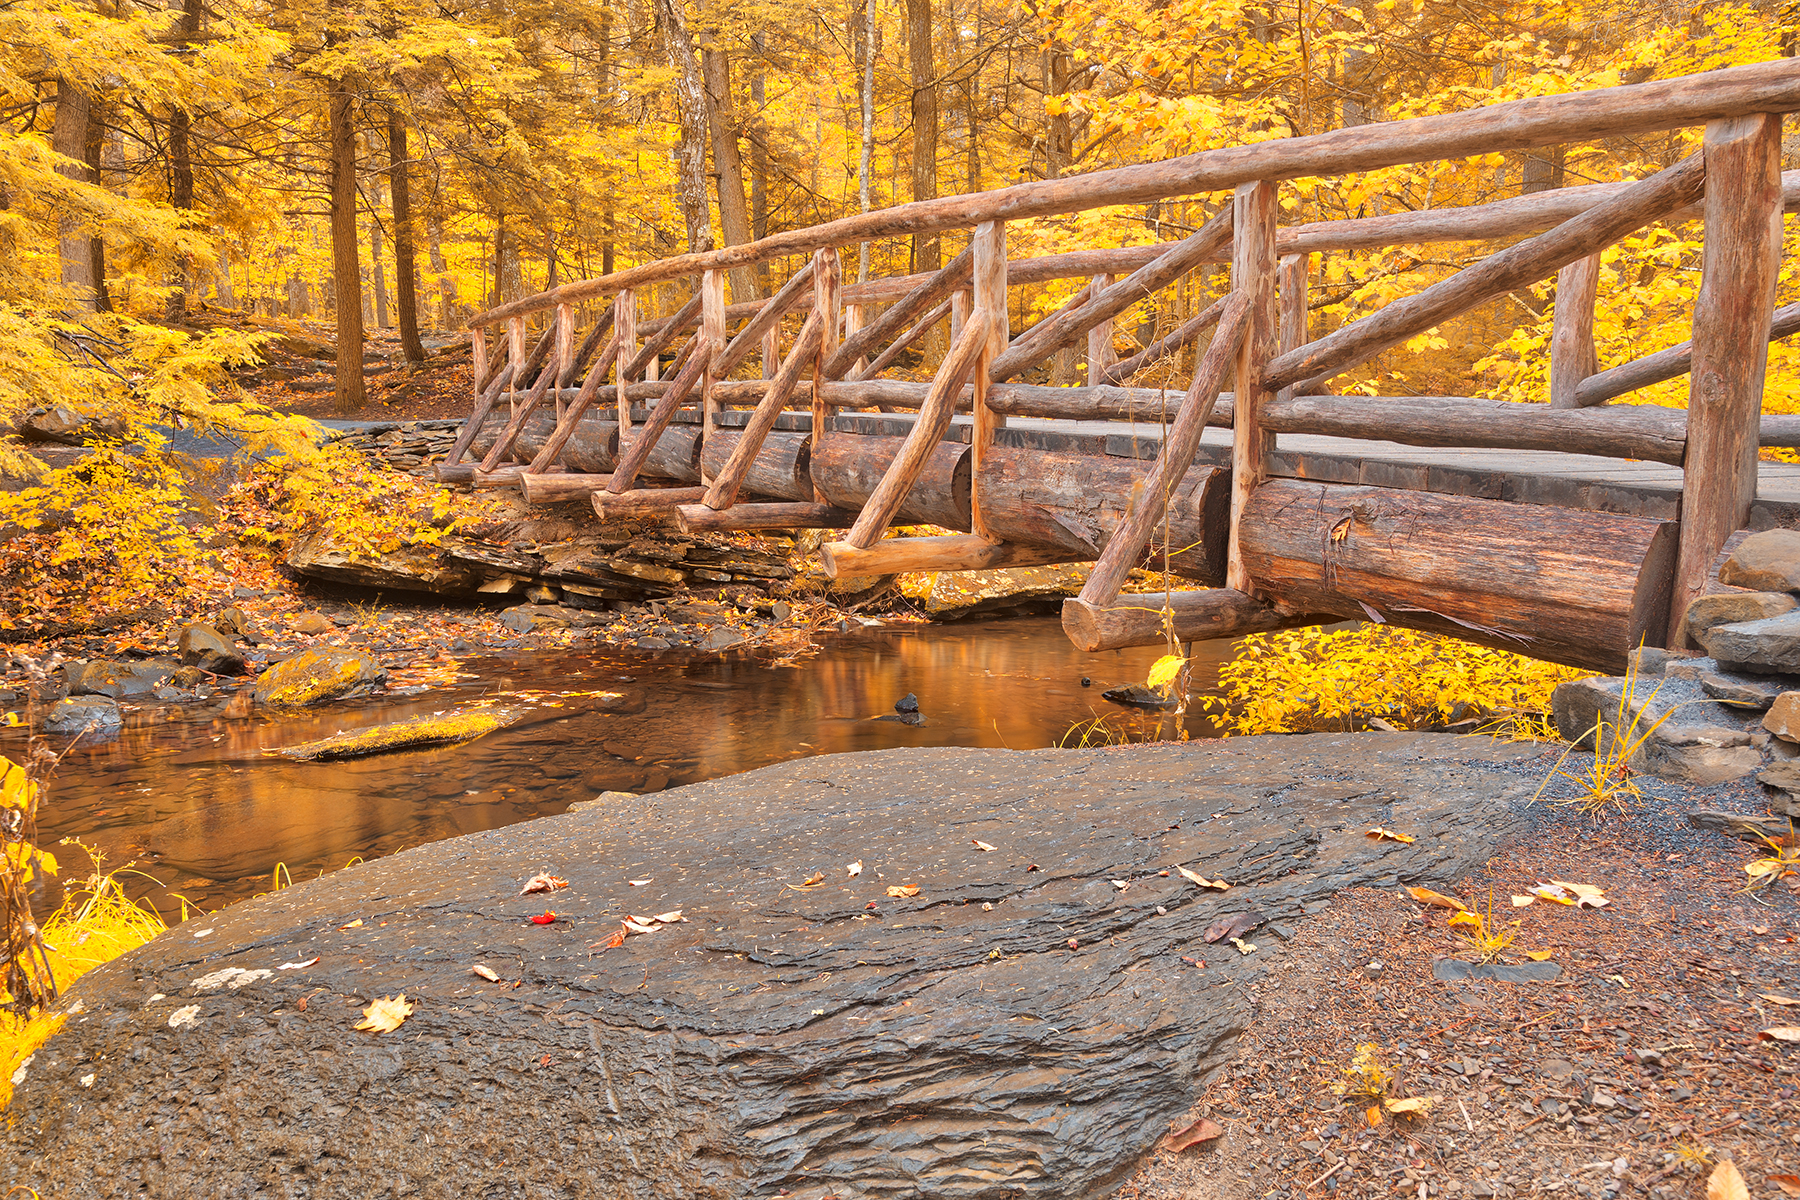 Golden Autumn Log Bridge - HDR, Adventure, Rails, Serene, Scenic, HQ Photo